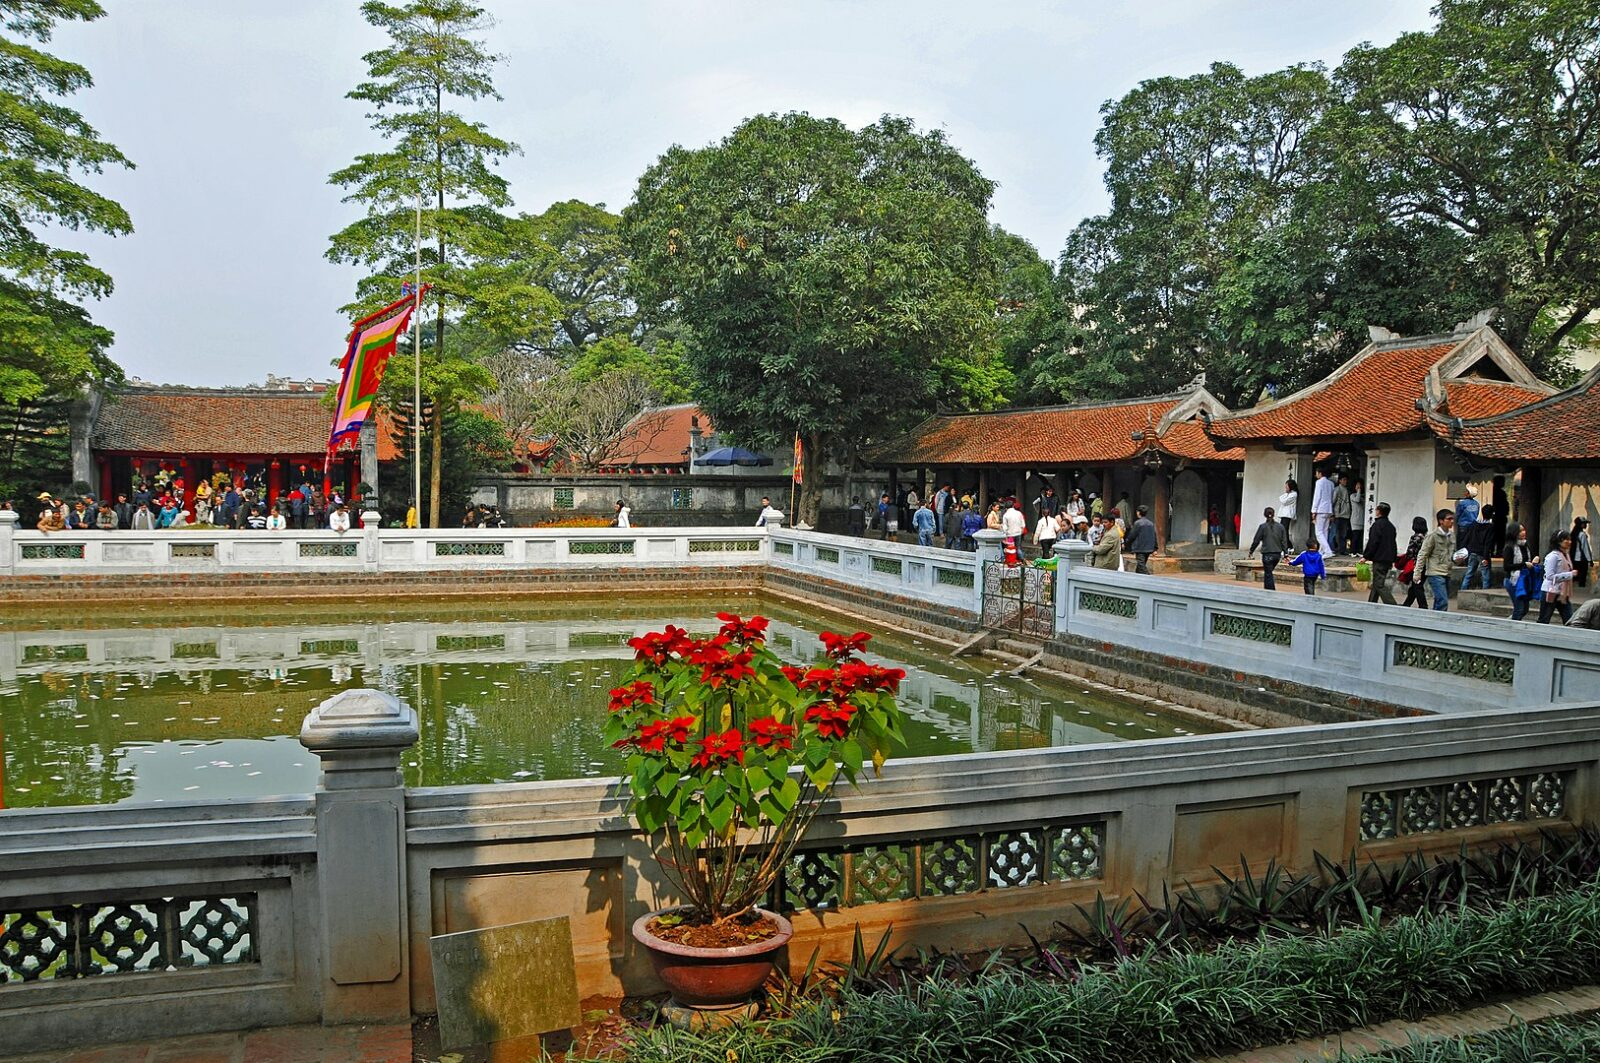 Image of the Khuc Can Cac Pavilion in the Temple of Literature in Hanoi, Vietnam